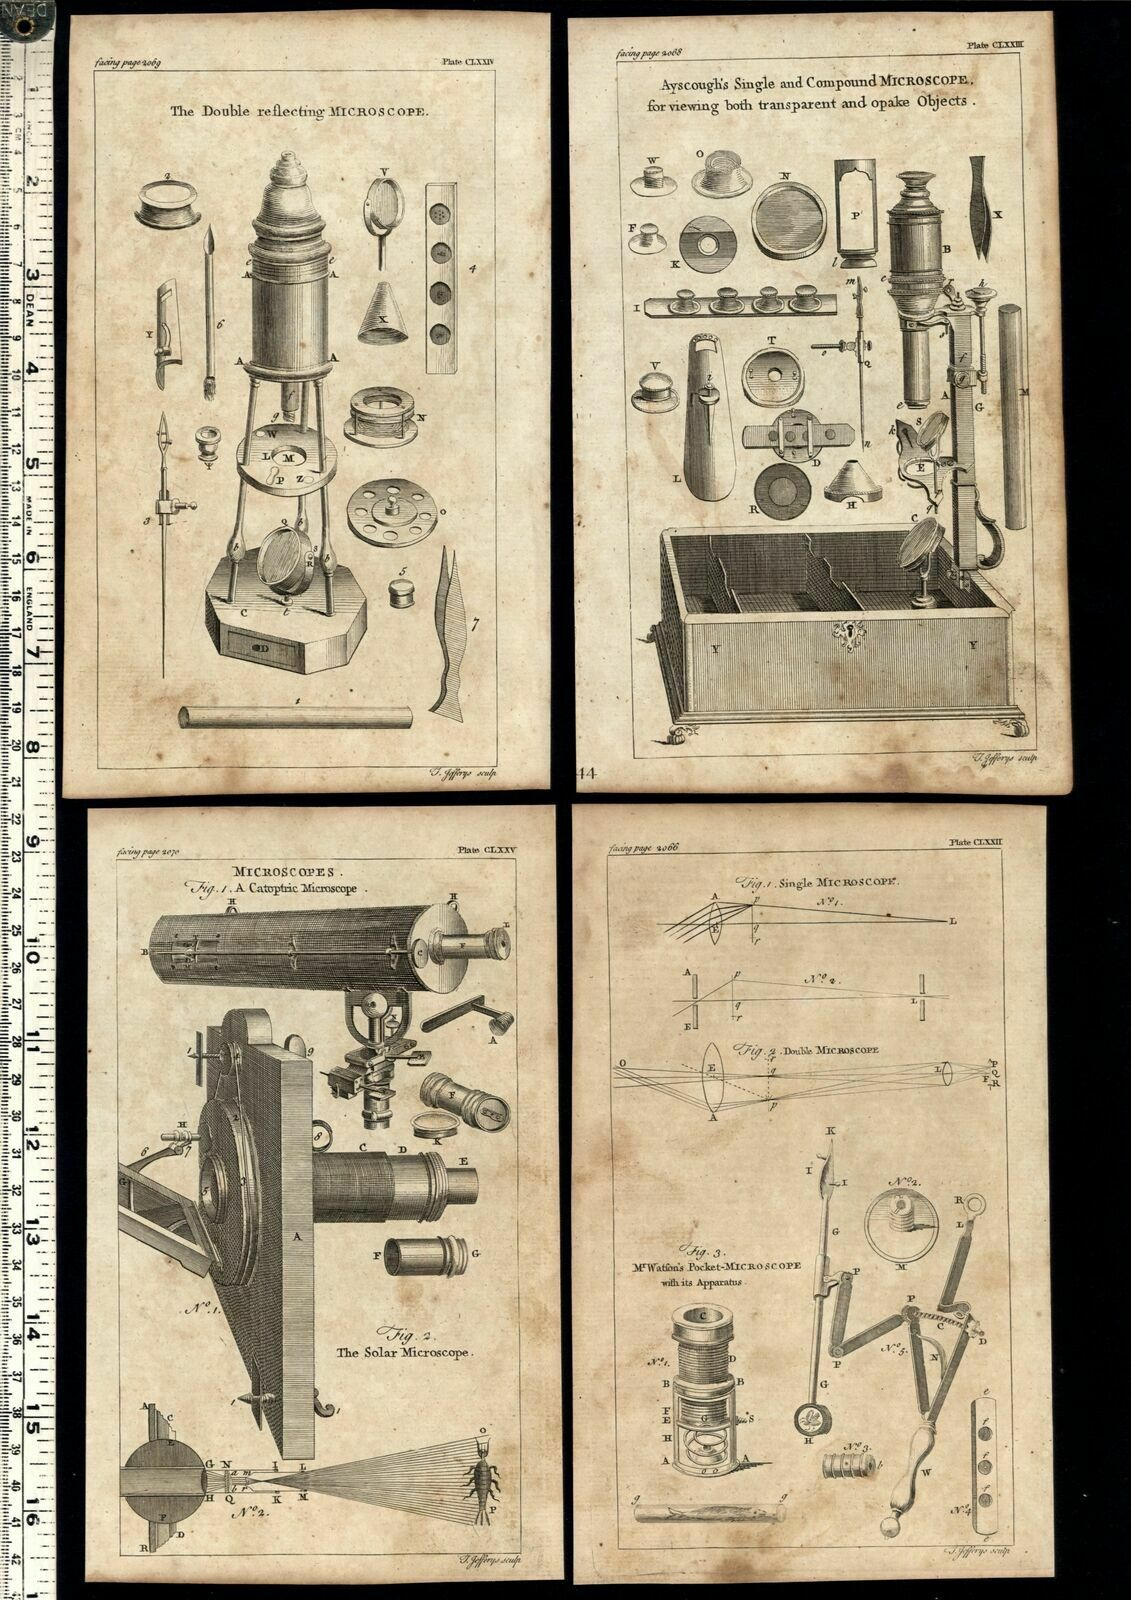 Microscopes Telescopes science 1754 Thomas Jefferys lot of 8 old engraved prints Good (Telescopes- vision- microscopes- catoptric- double reflecting- Mr. s Watson's pocket microscope- Ascough's single and compound microscope) Issued 175